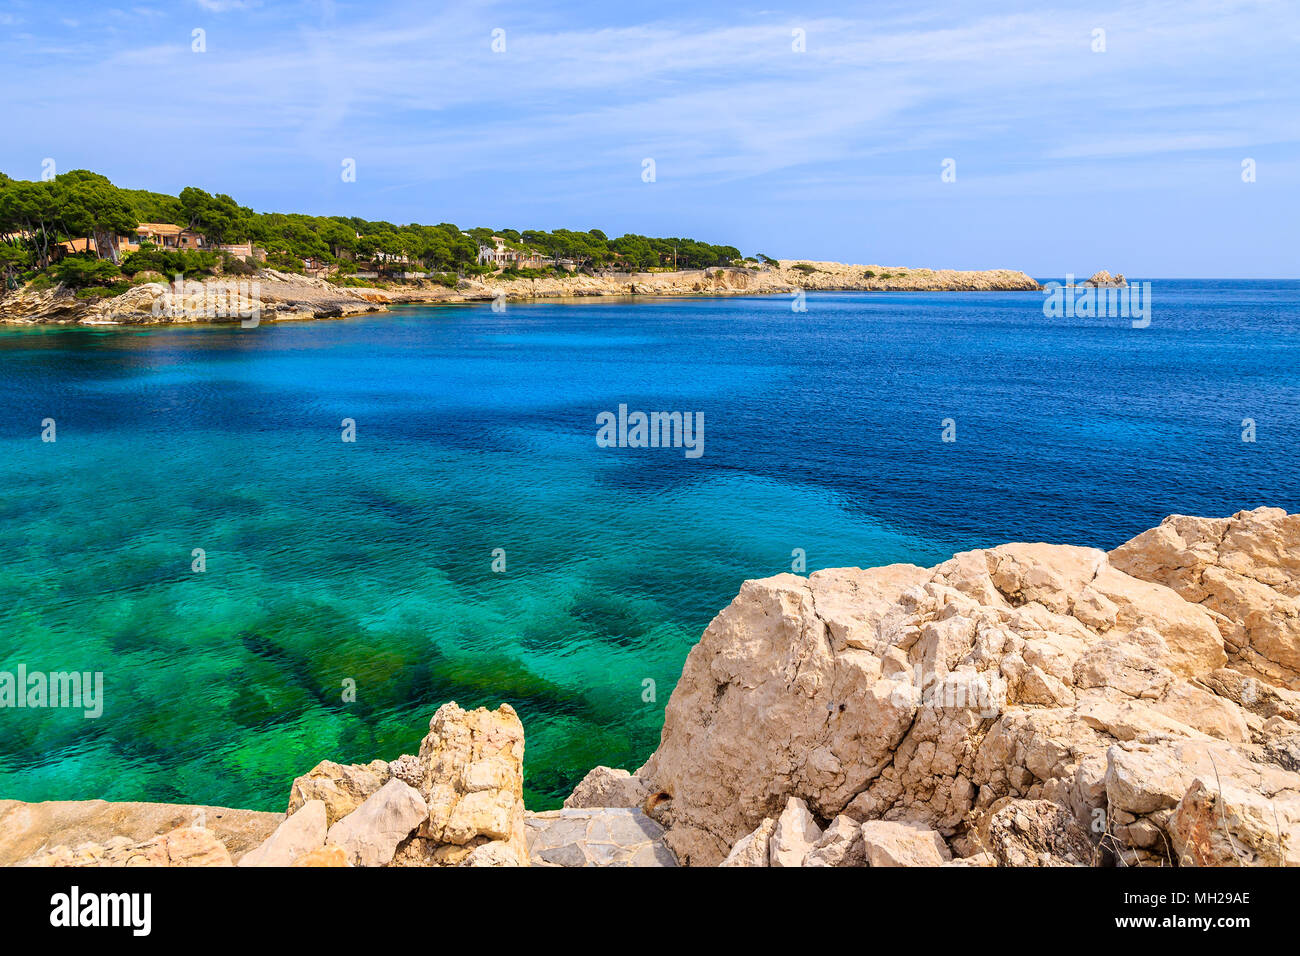 View of beautiful Cala Gat bay with azure sea water, Majorca island, Spain - Stock Image